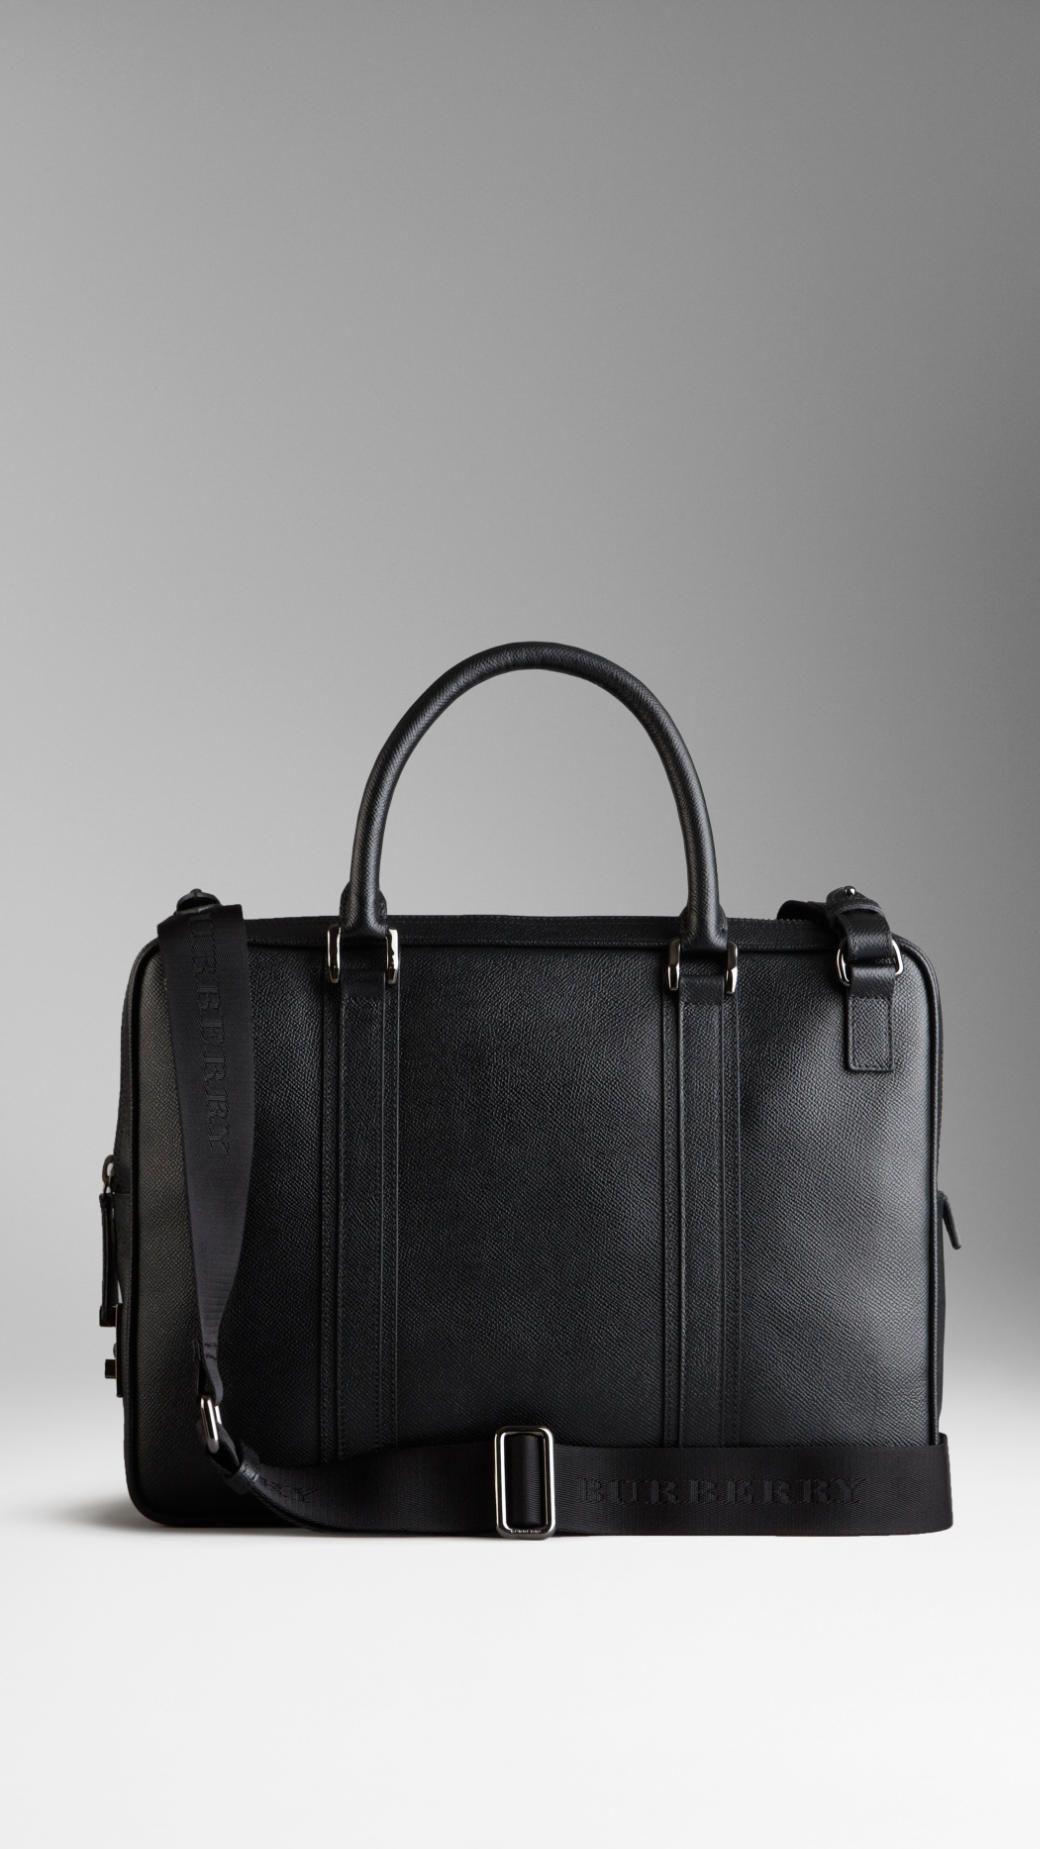 London Leather Crossbody Briefcase | Burberry $1,695.00 Item 38608881 BLACK         London leather crossbody briefcase with protective padding         Zip closure, rolled leather handles, detachable webbed canvas crossbody strap         Polished metal hardware         27 x 37 x 7cm         10.6 x 14.6 x 2.8in         100% calf leather         Imported